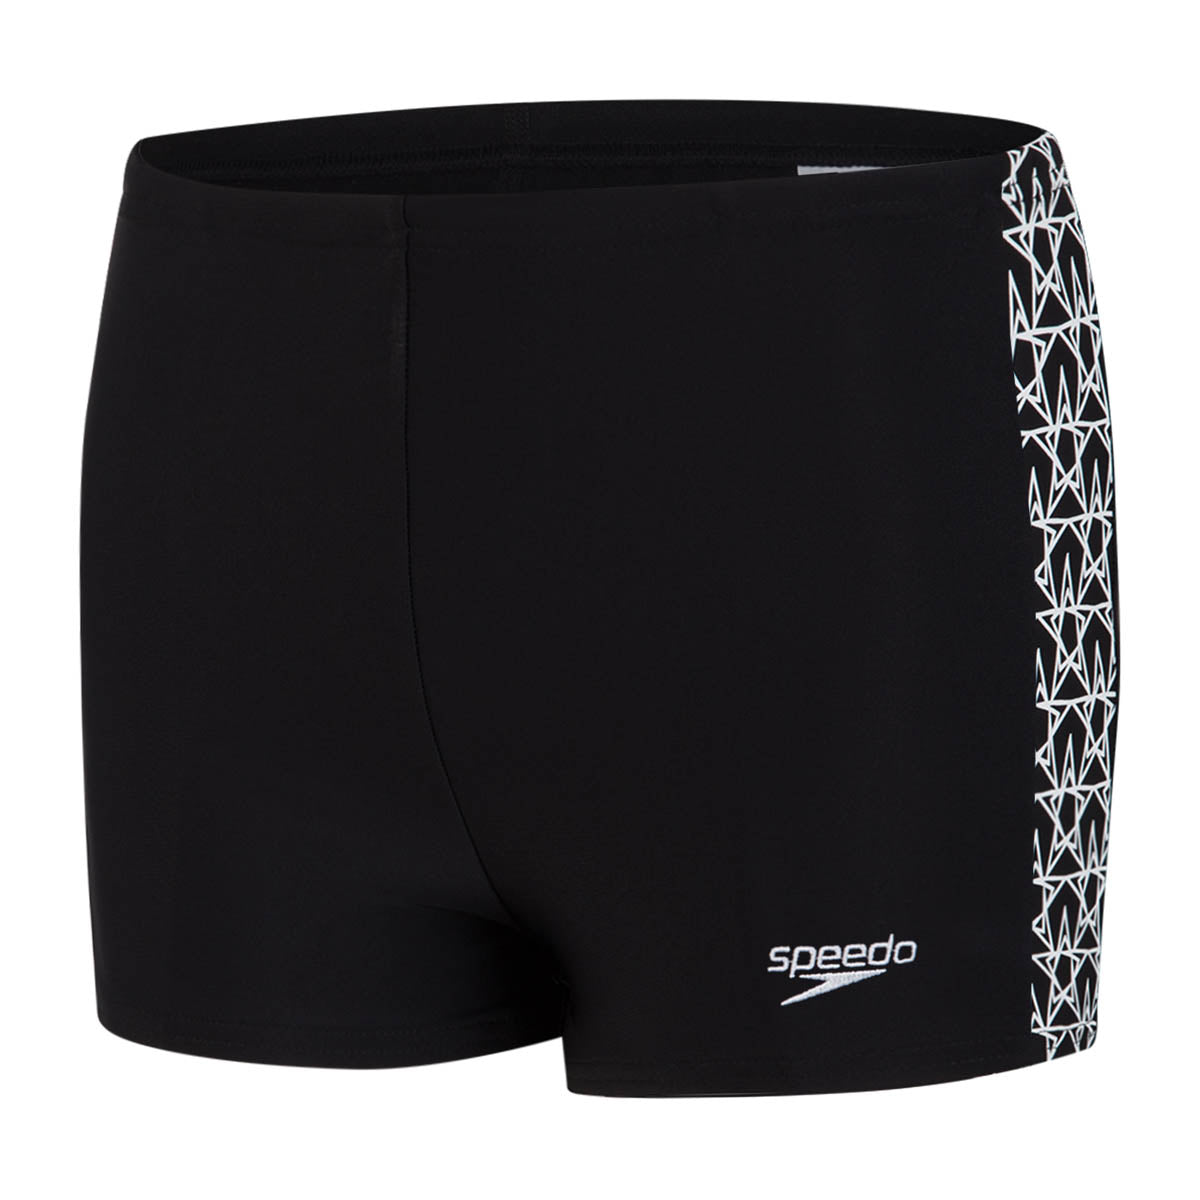 Speedo Boomstar splice Aquashort black/white